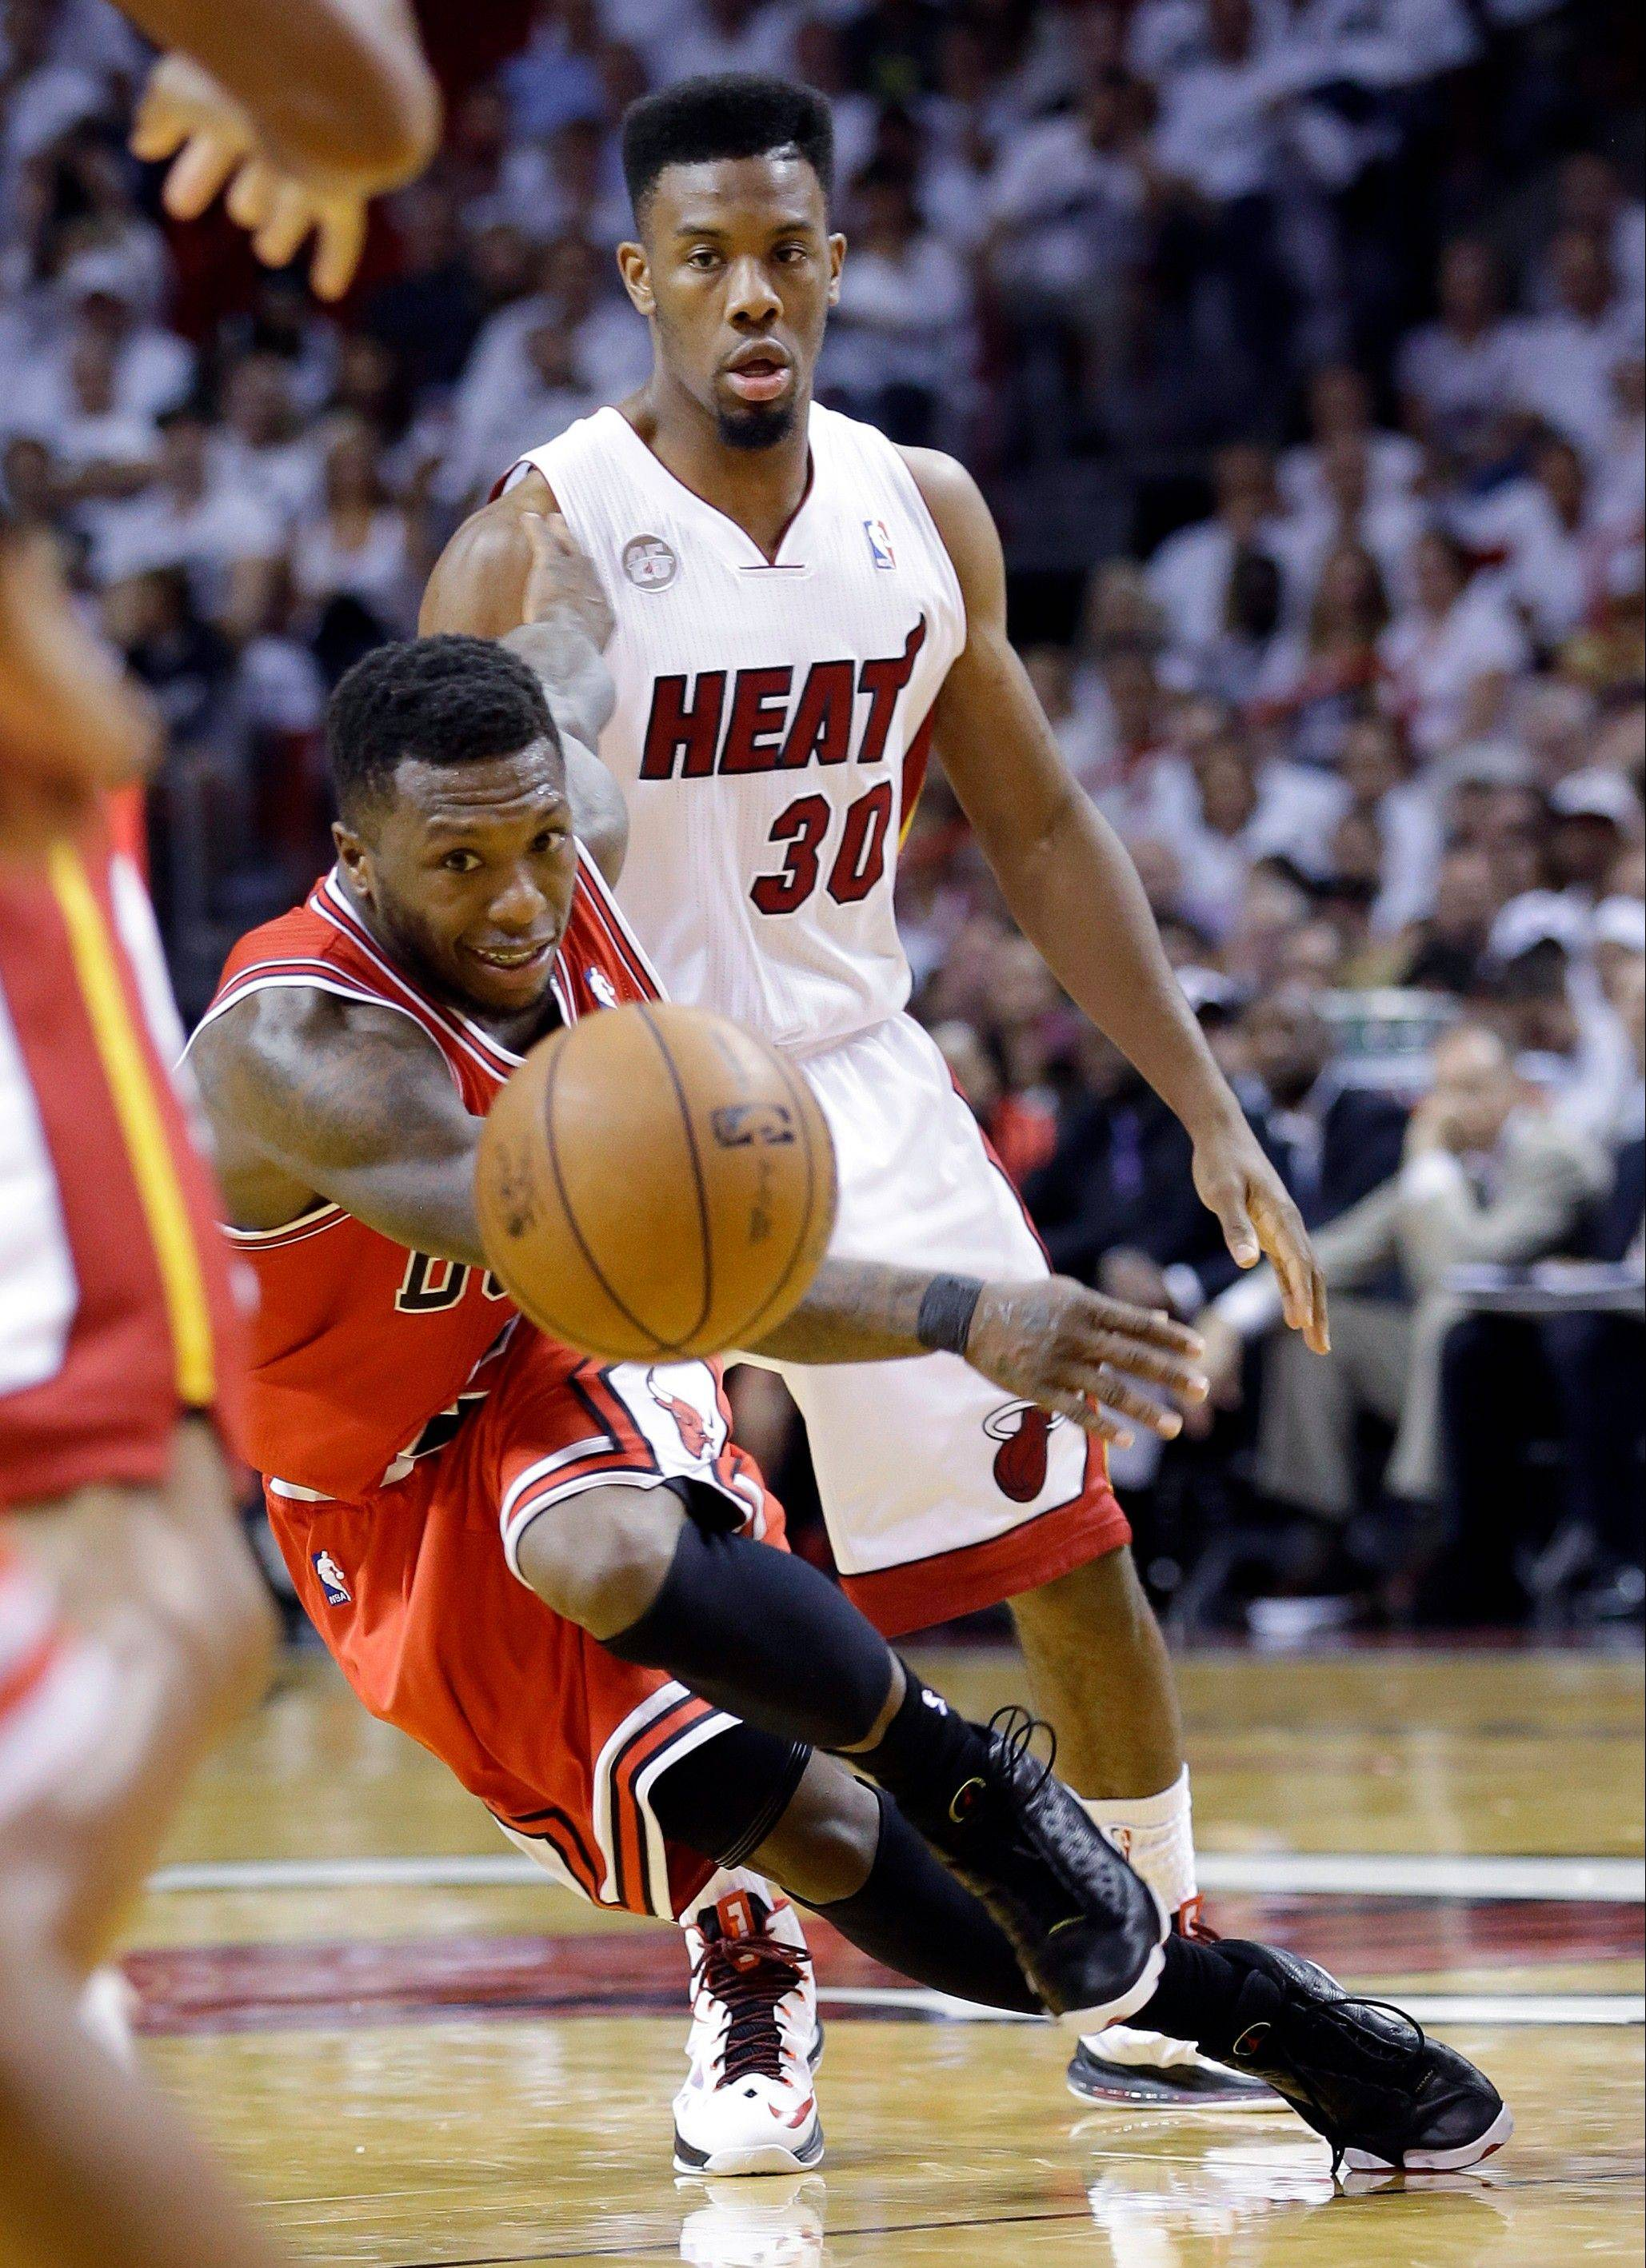 Nate Robinson passes the ball as Miami's Norris Cole watches during the second half of the Bulls' loss Wednesday.